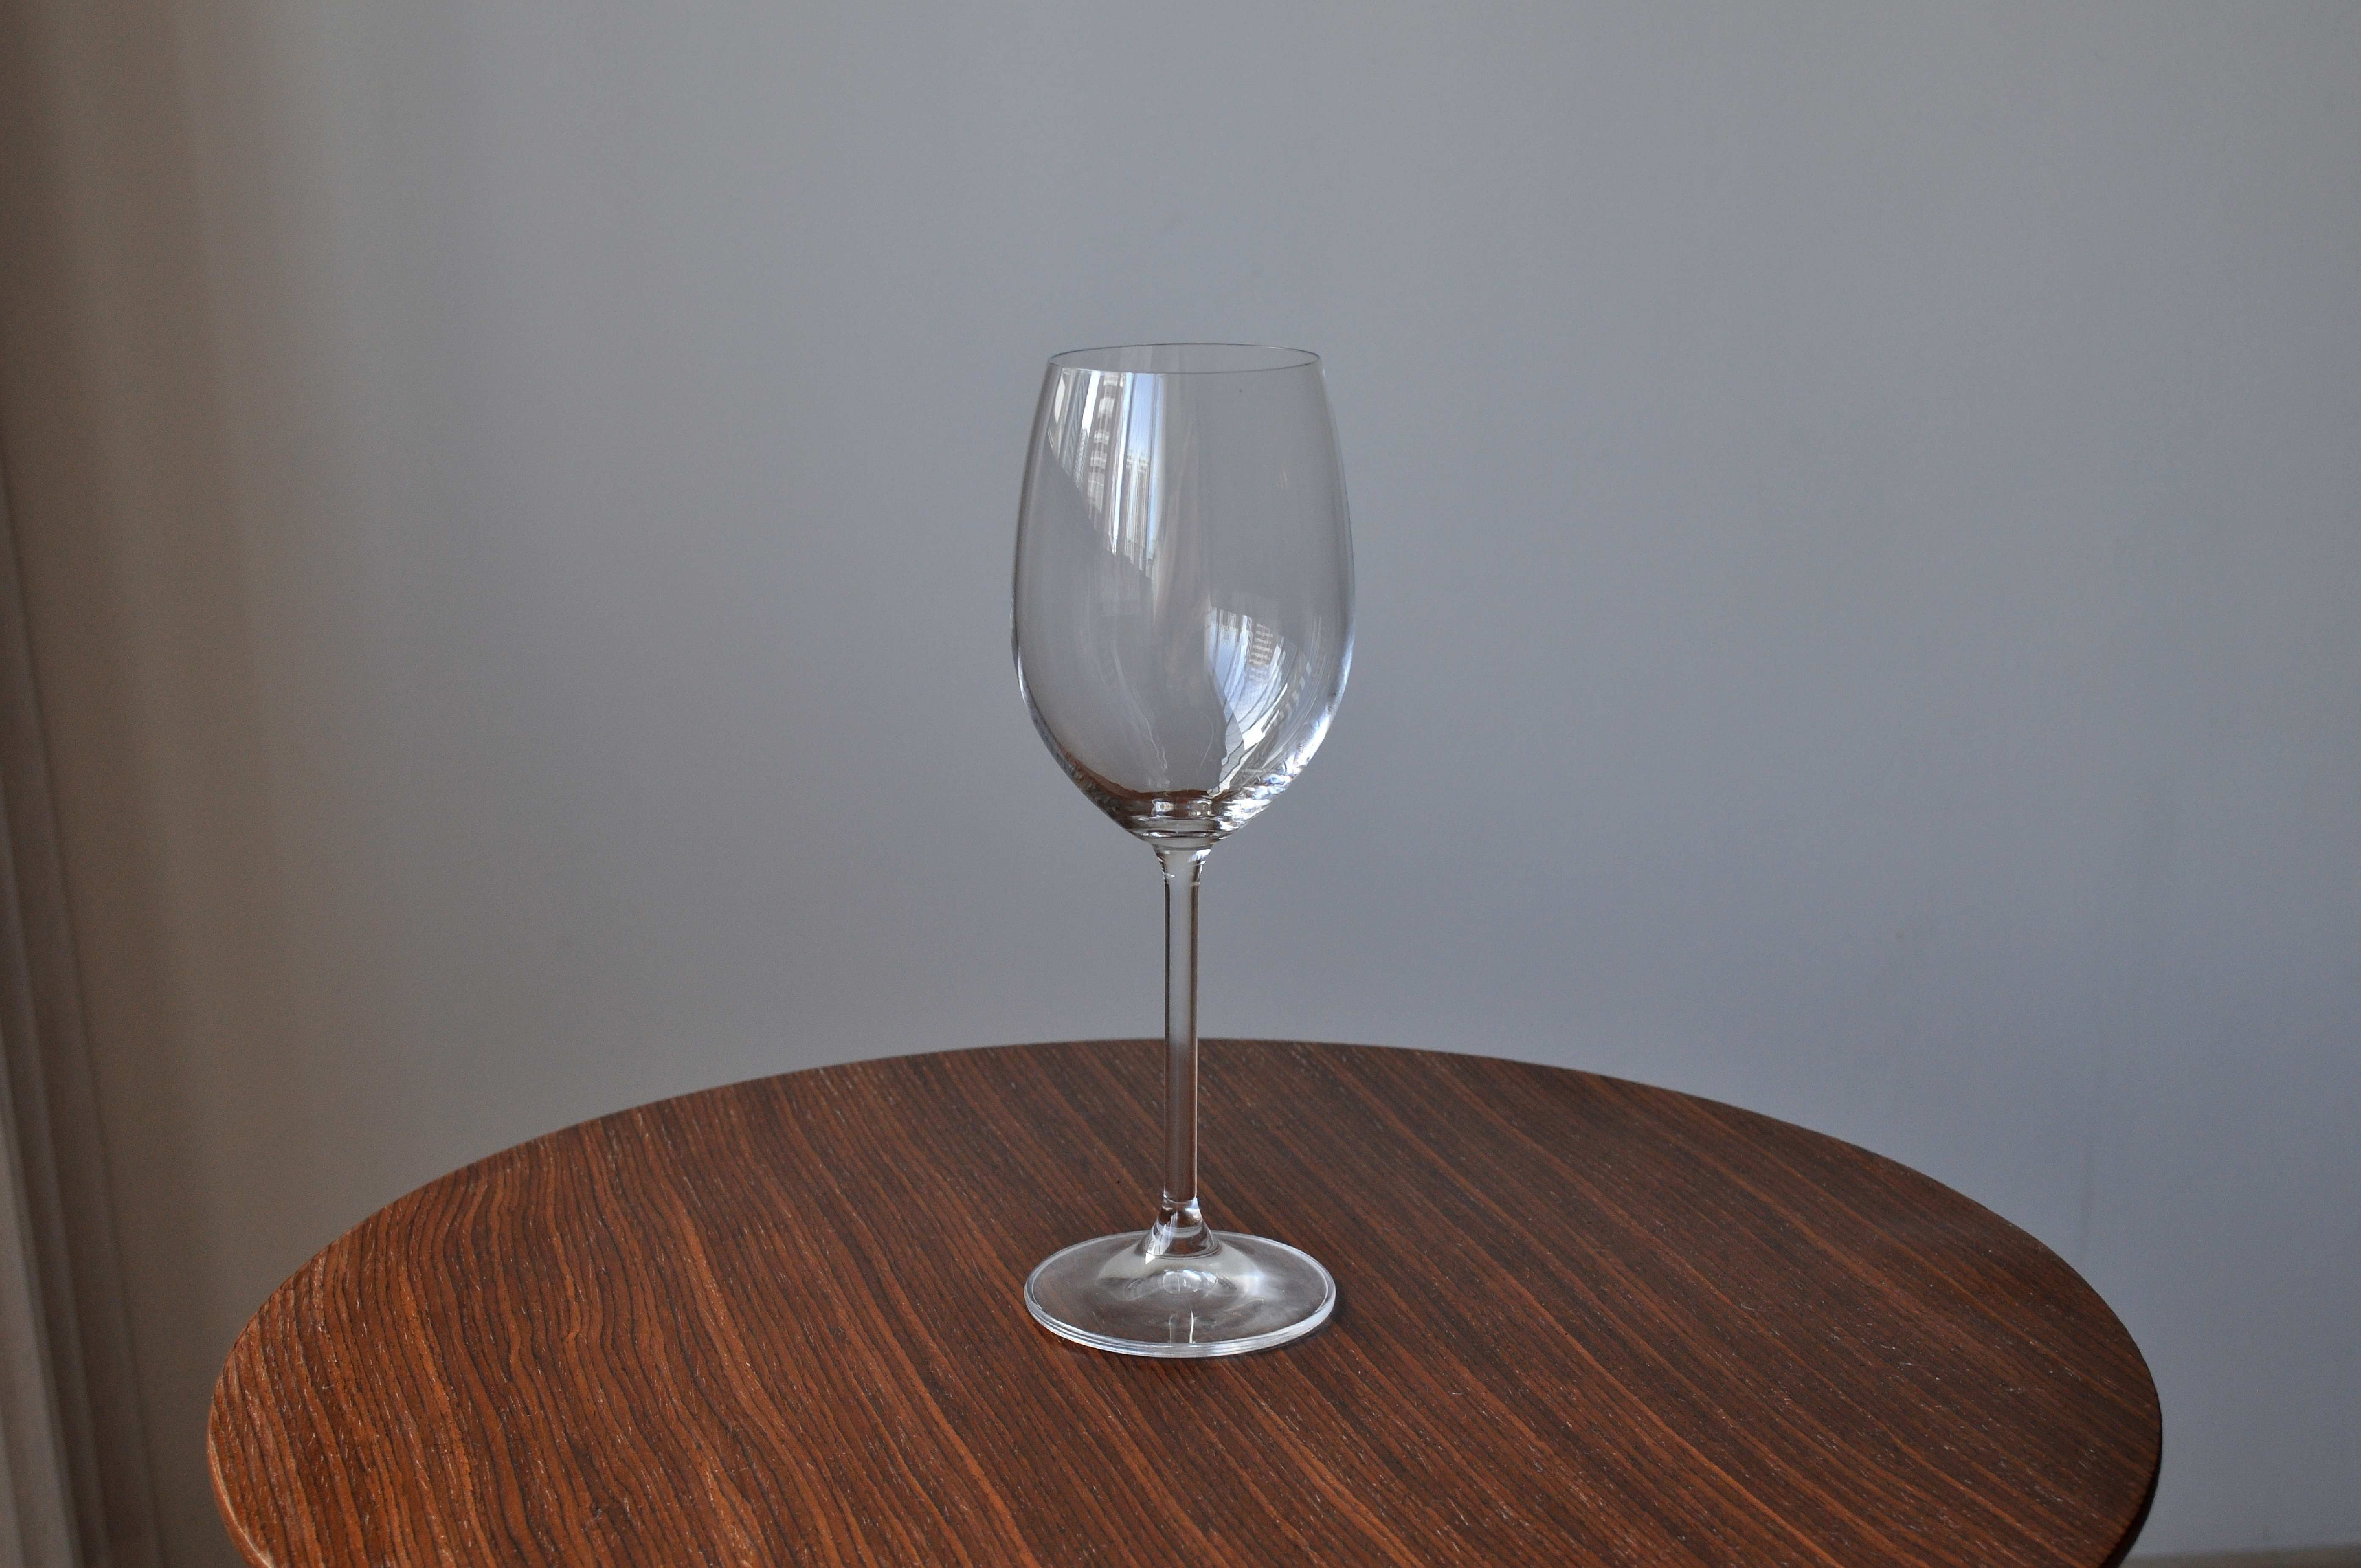 free picture vine glass cup white table. Black Bedroom Furniture Sets. Home Design Ideas